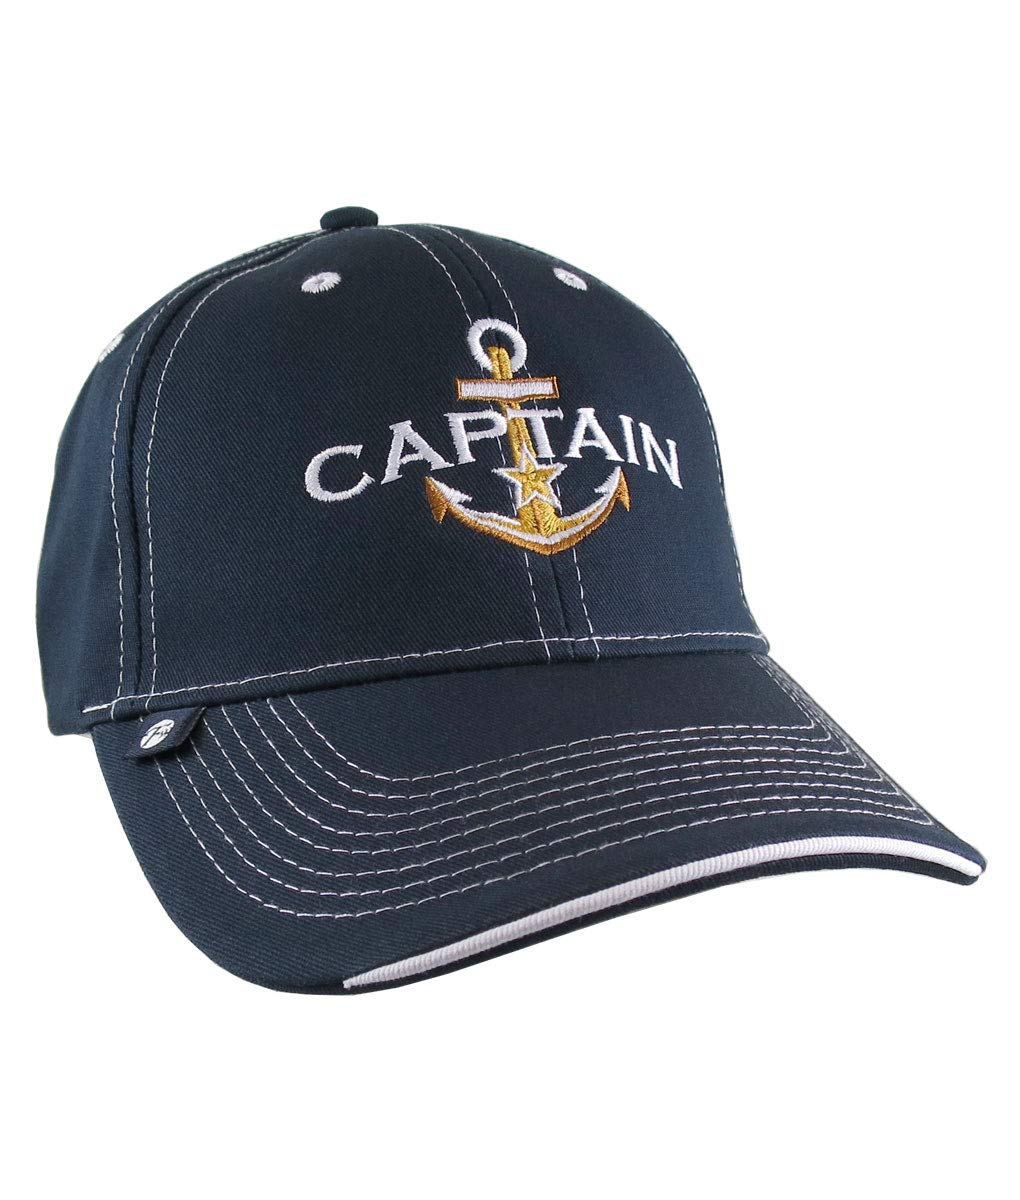 Nautical Star Golden Anchor Boat Captain Embroidery on an Adjustable Navy Blue Structured Baseball Cap with Options to Personalize The Hat